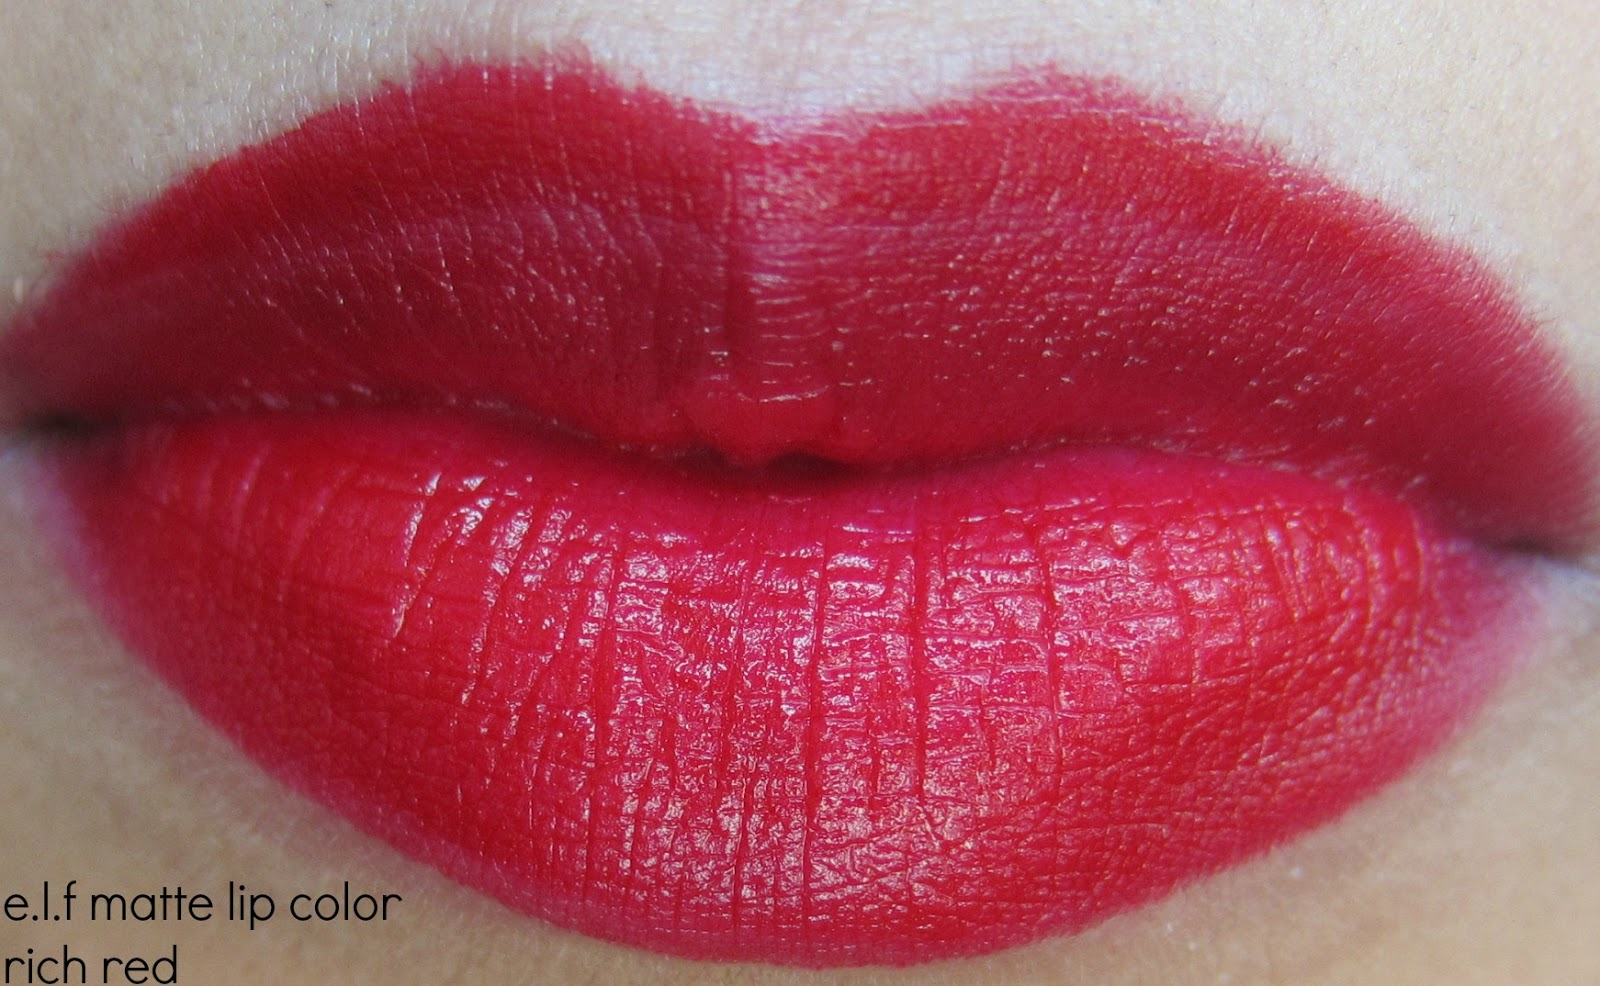 e.l.f matte lip color rich red